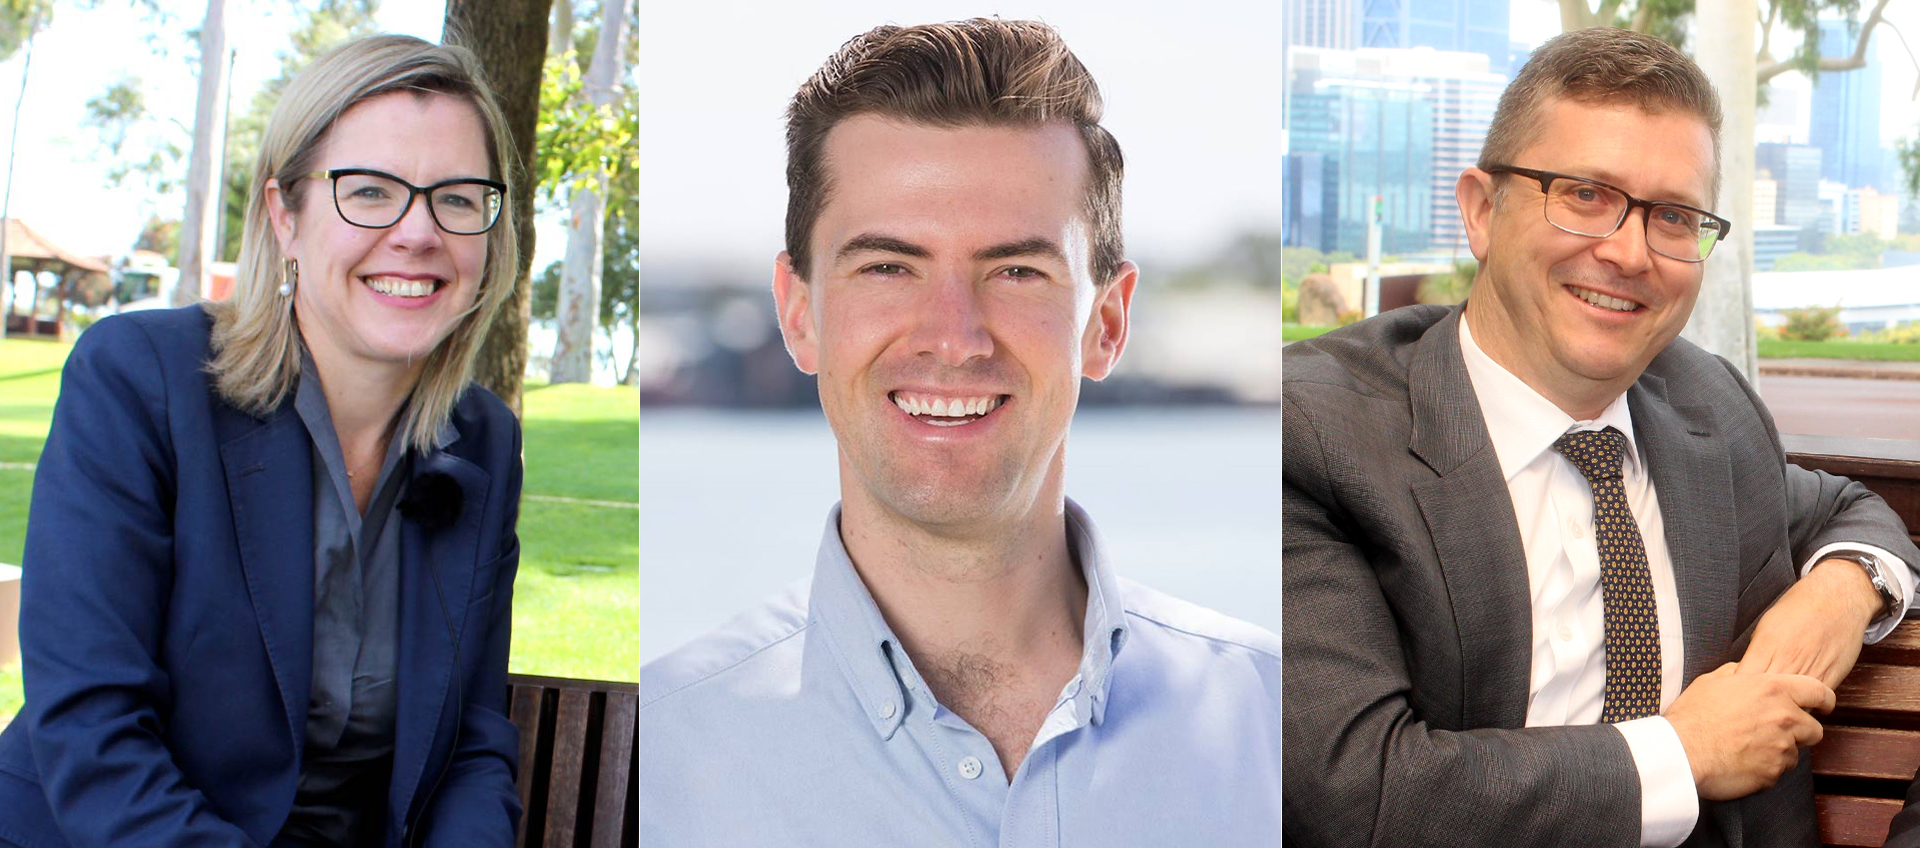 Libby Mettam, Zak Kirkup and Tjorn Sibma were all major players in the WA Liberals shadow cabinet re-shuffle.